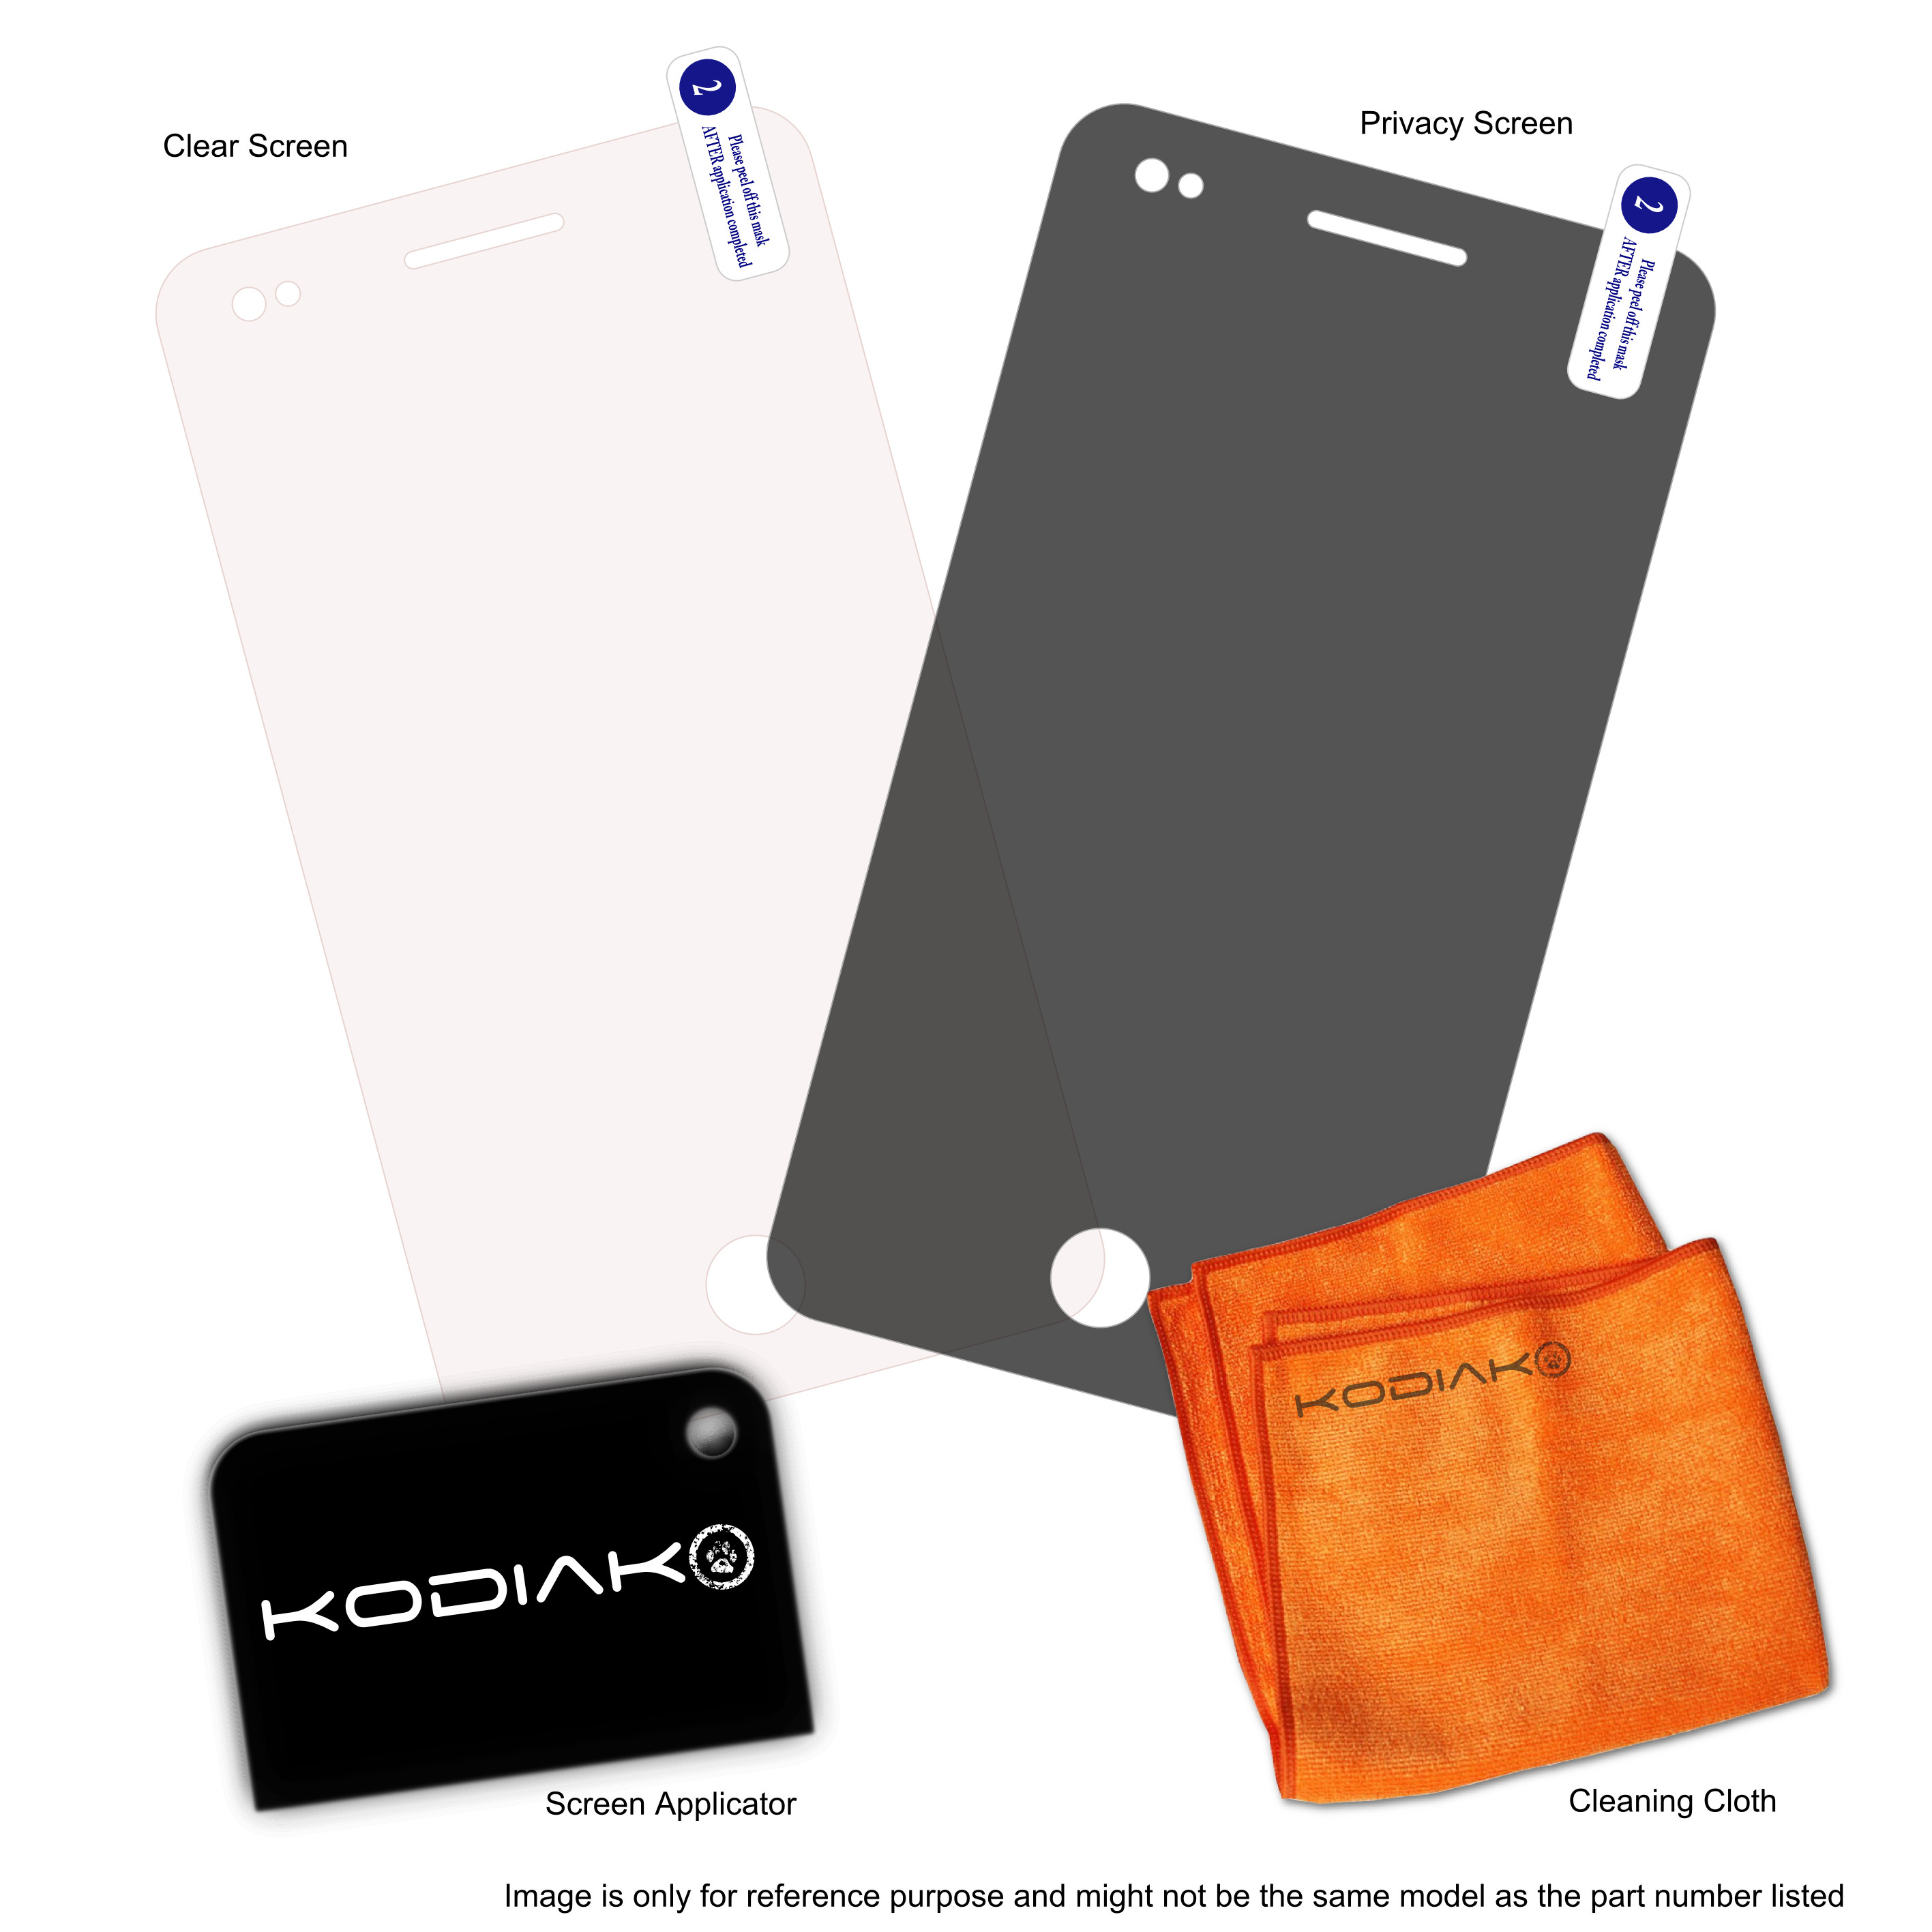 original-kodiak-screen-protector-sony-ericsson-xperia-neo-v-iprotect-2-package-clear-privacy